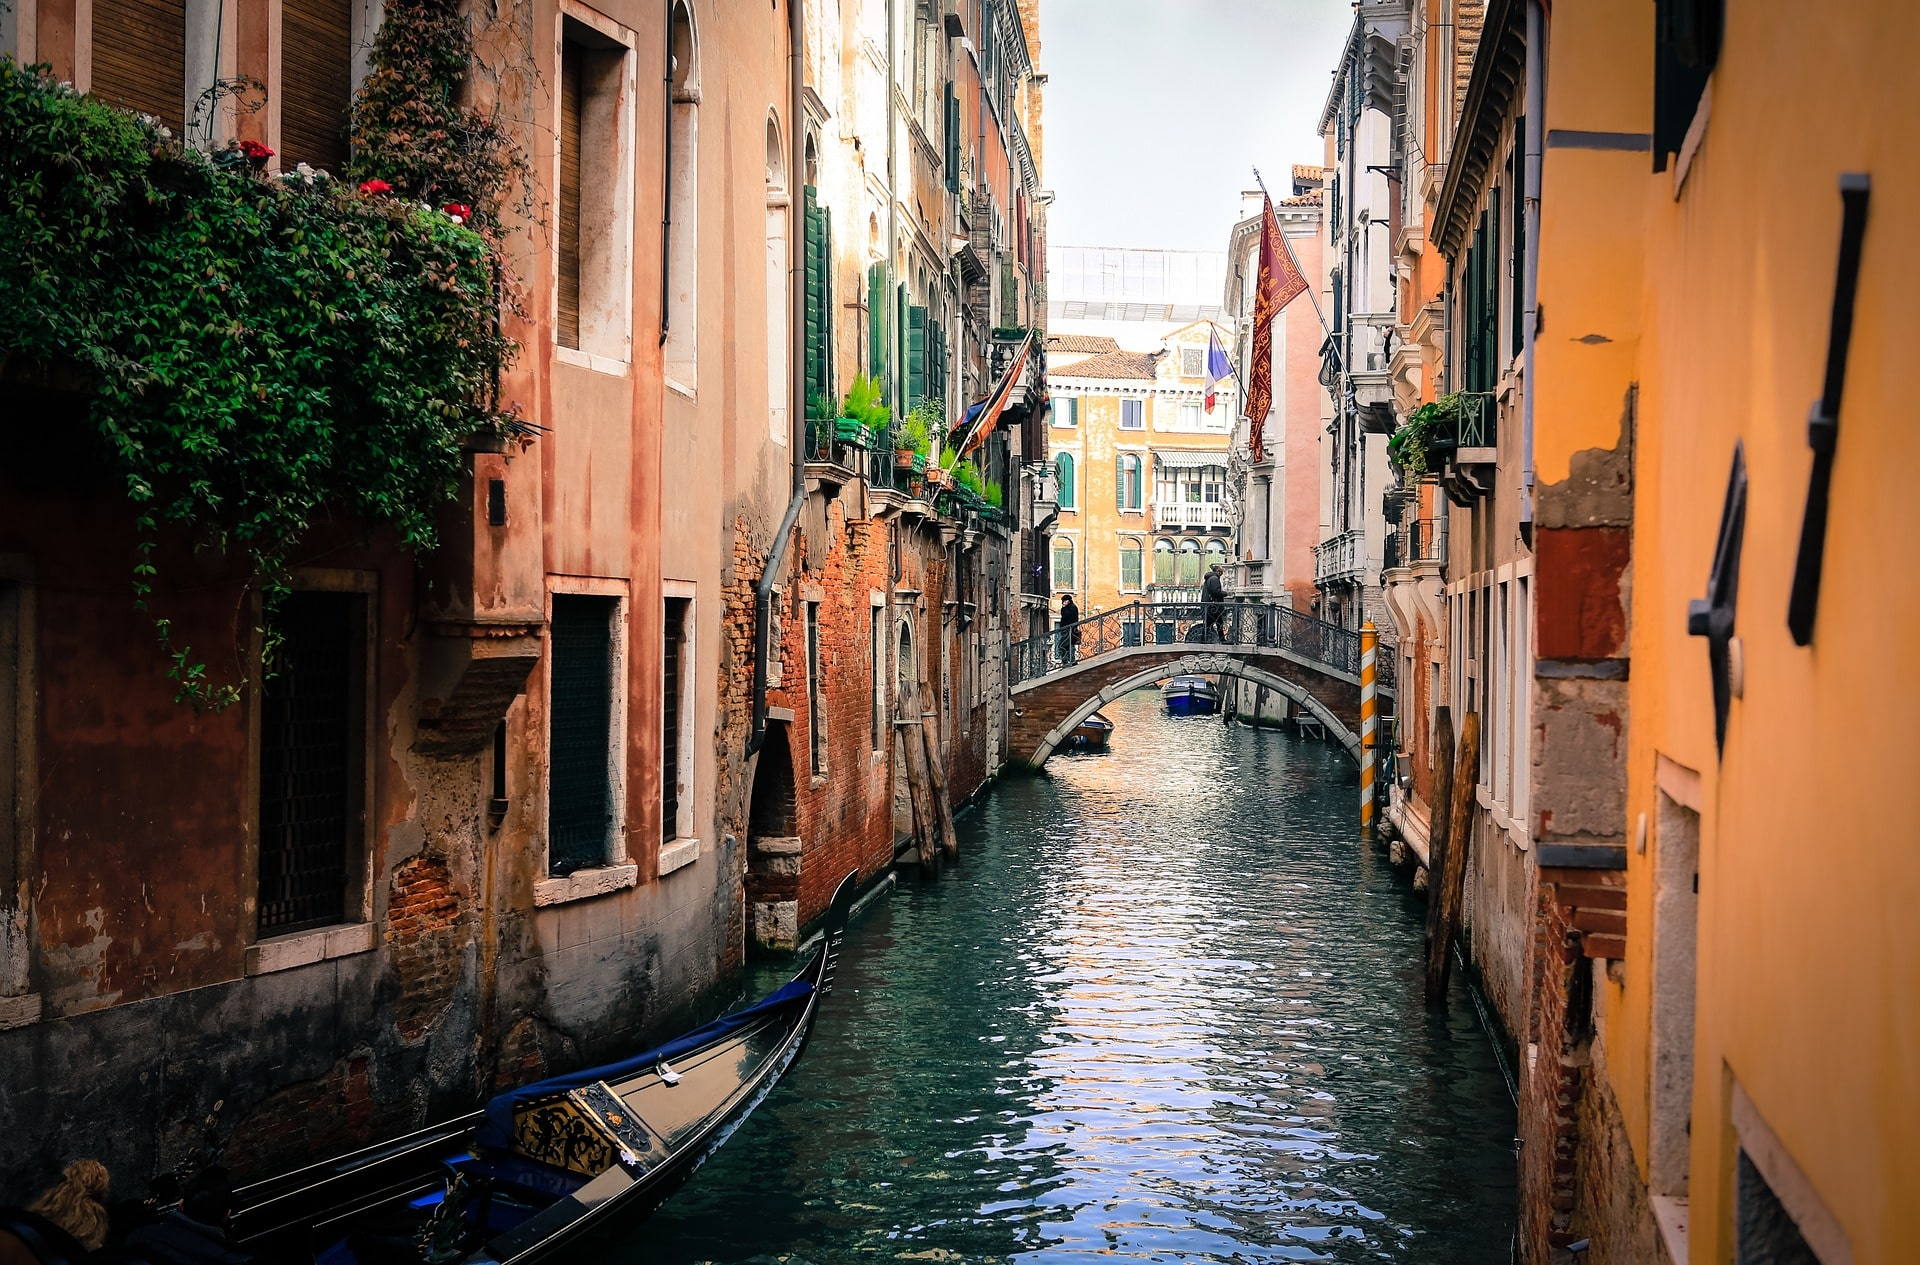 Gorgeous Venice is an amazing place to visit in Italy